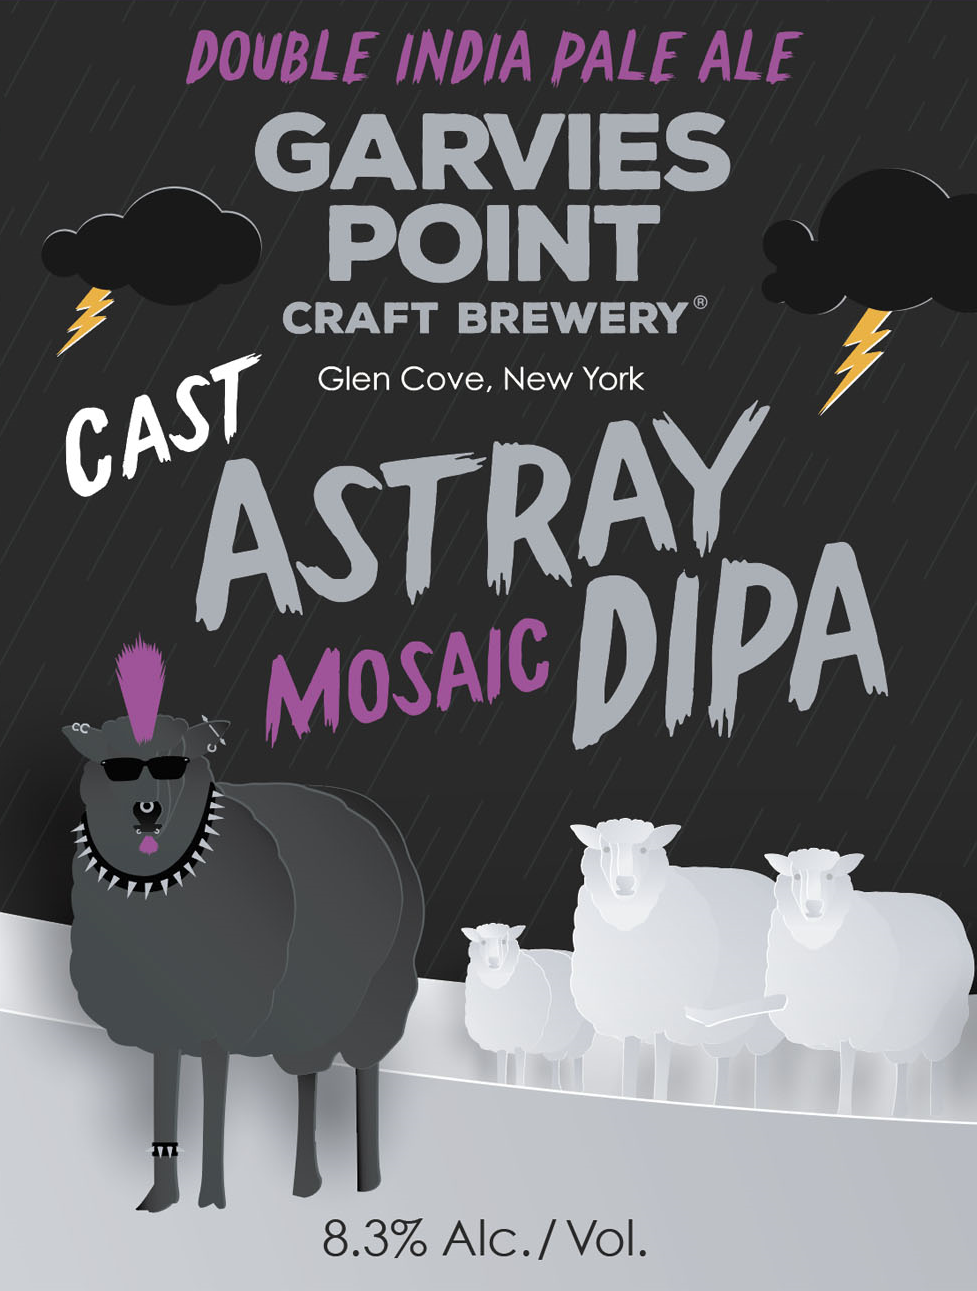 Garvies Point Cast Astray Mosaic beer Label Full Size